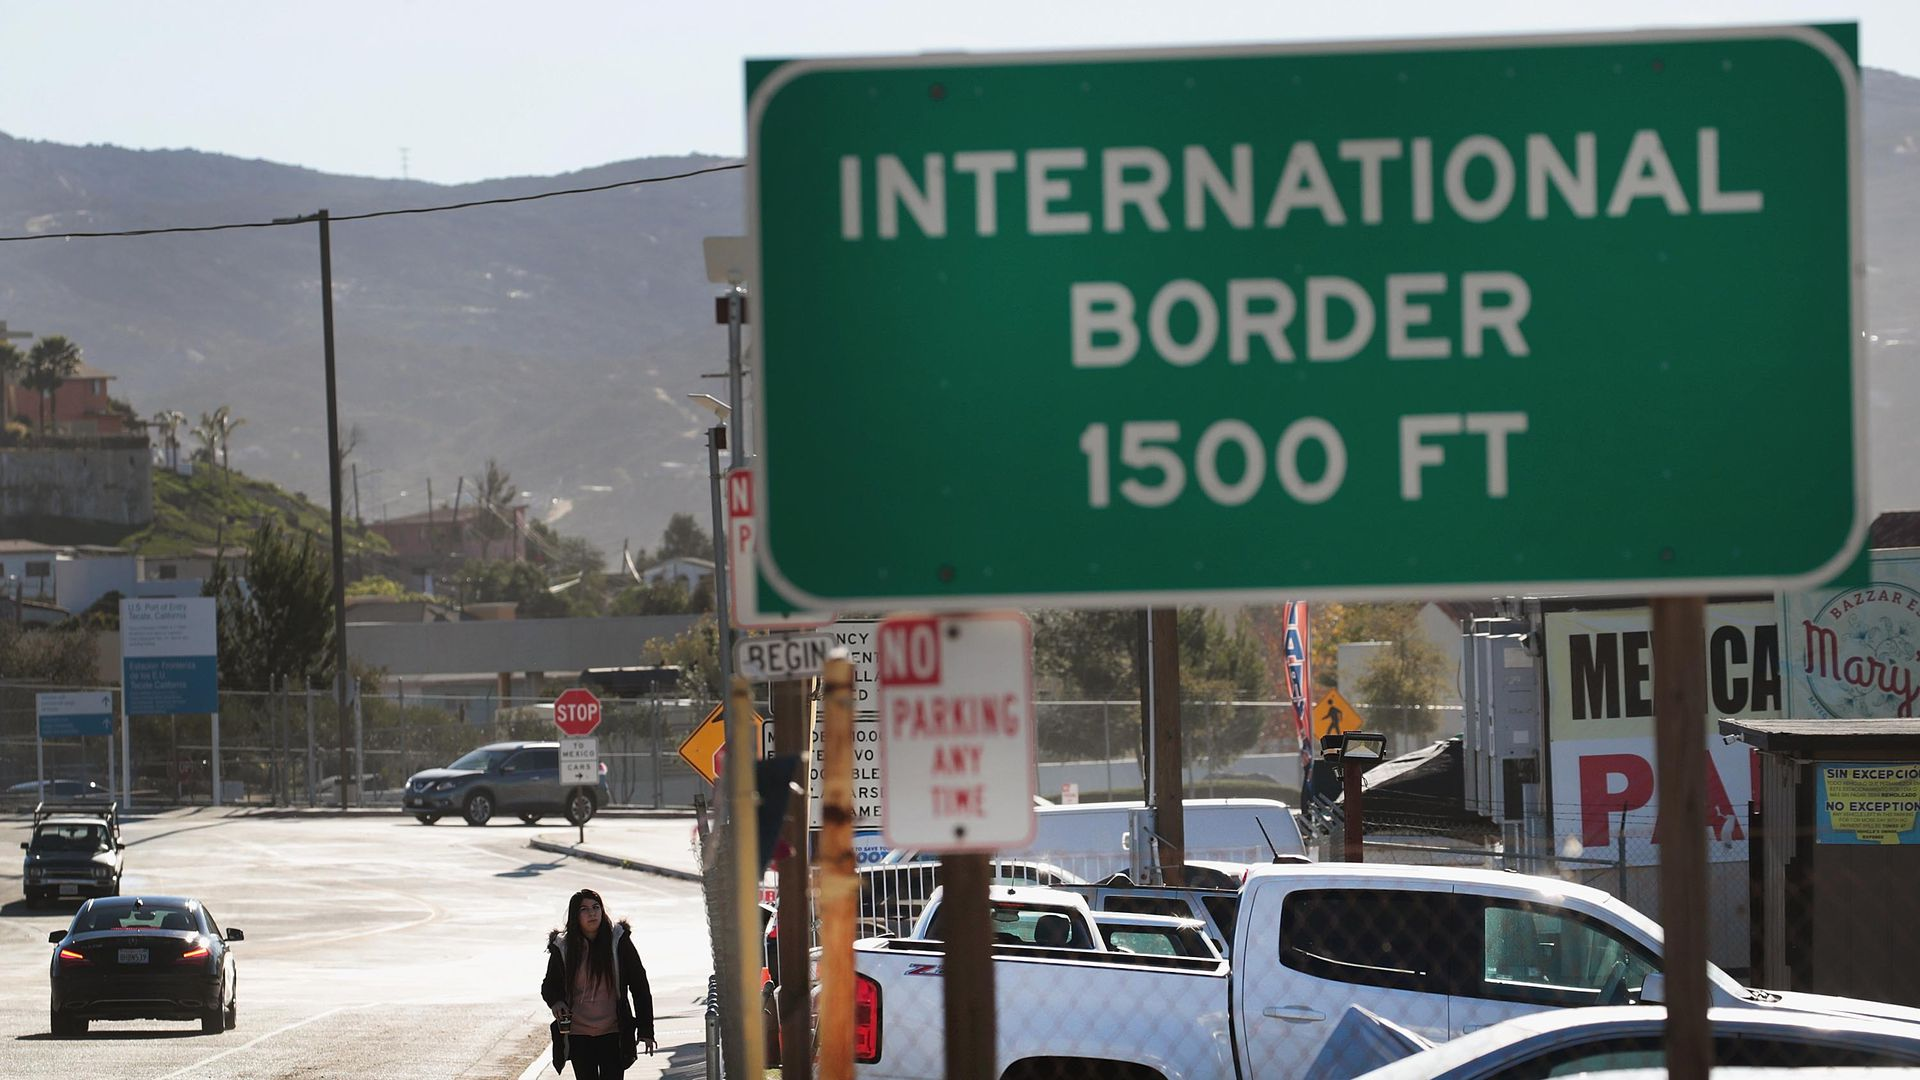 Sign for u.s.-mexico border